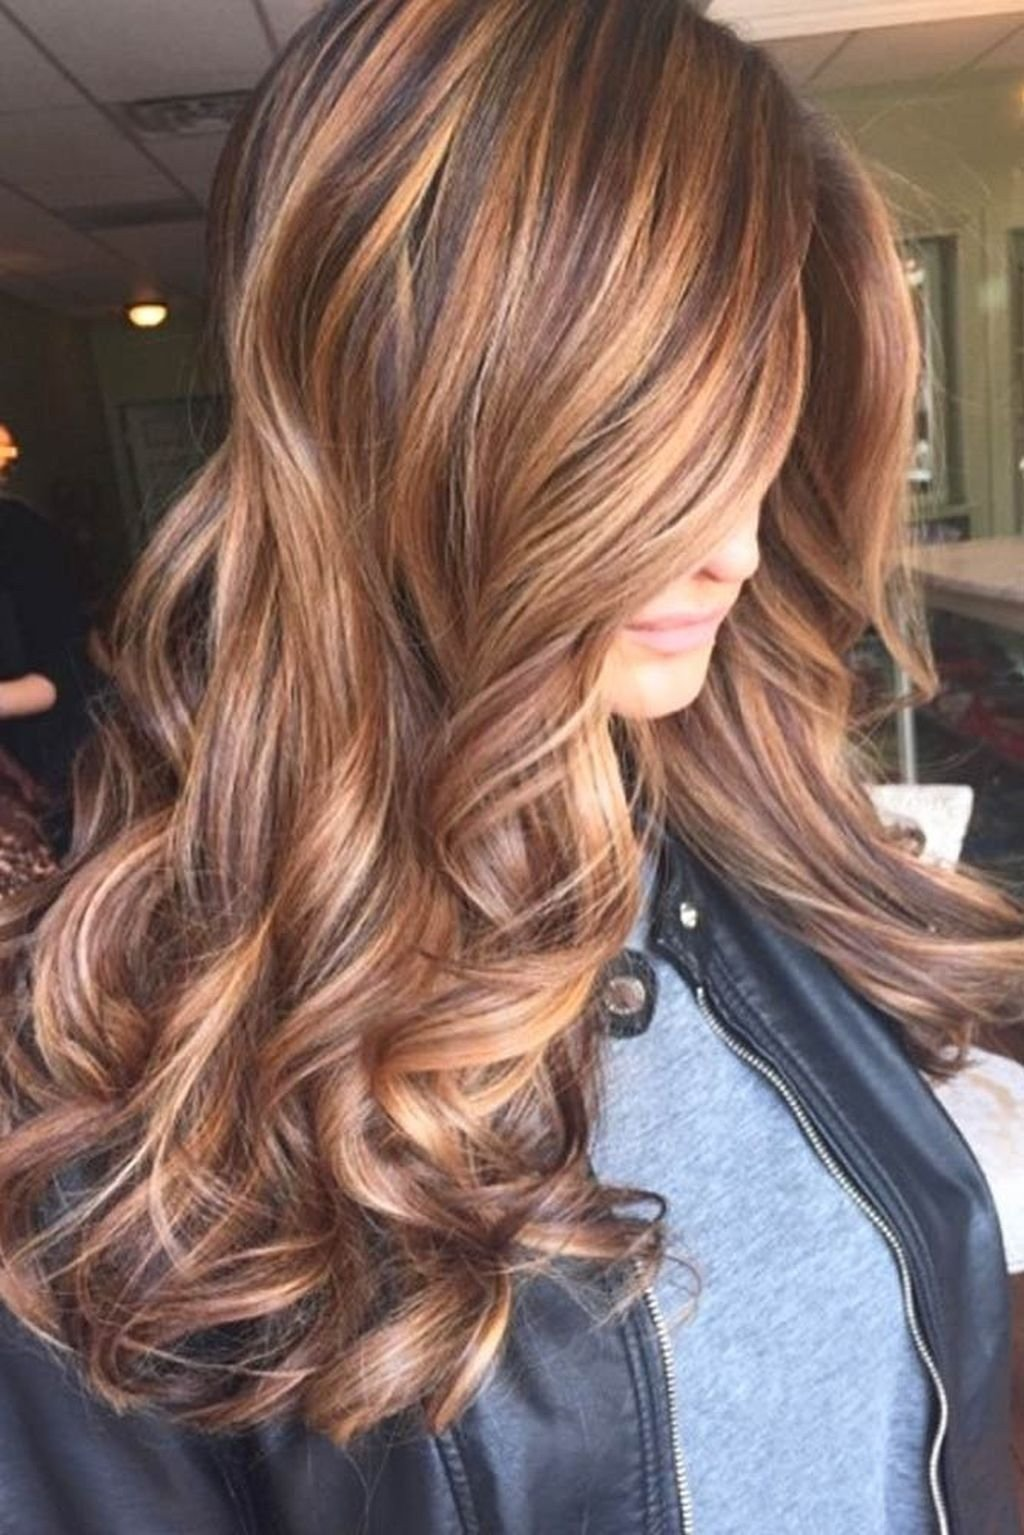 10 Spectacular Hair Color Ideas For Fall stunning fall hair color ideas 2017 trends 21 coiffures cheveux 1 2020